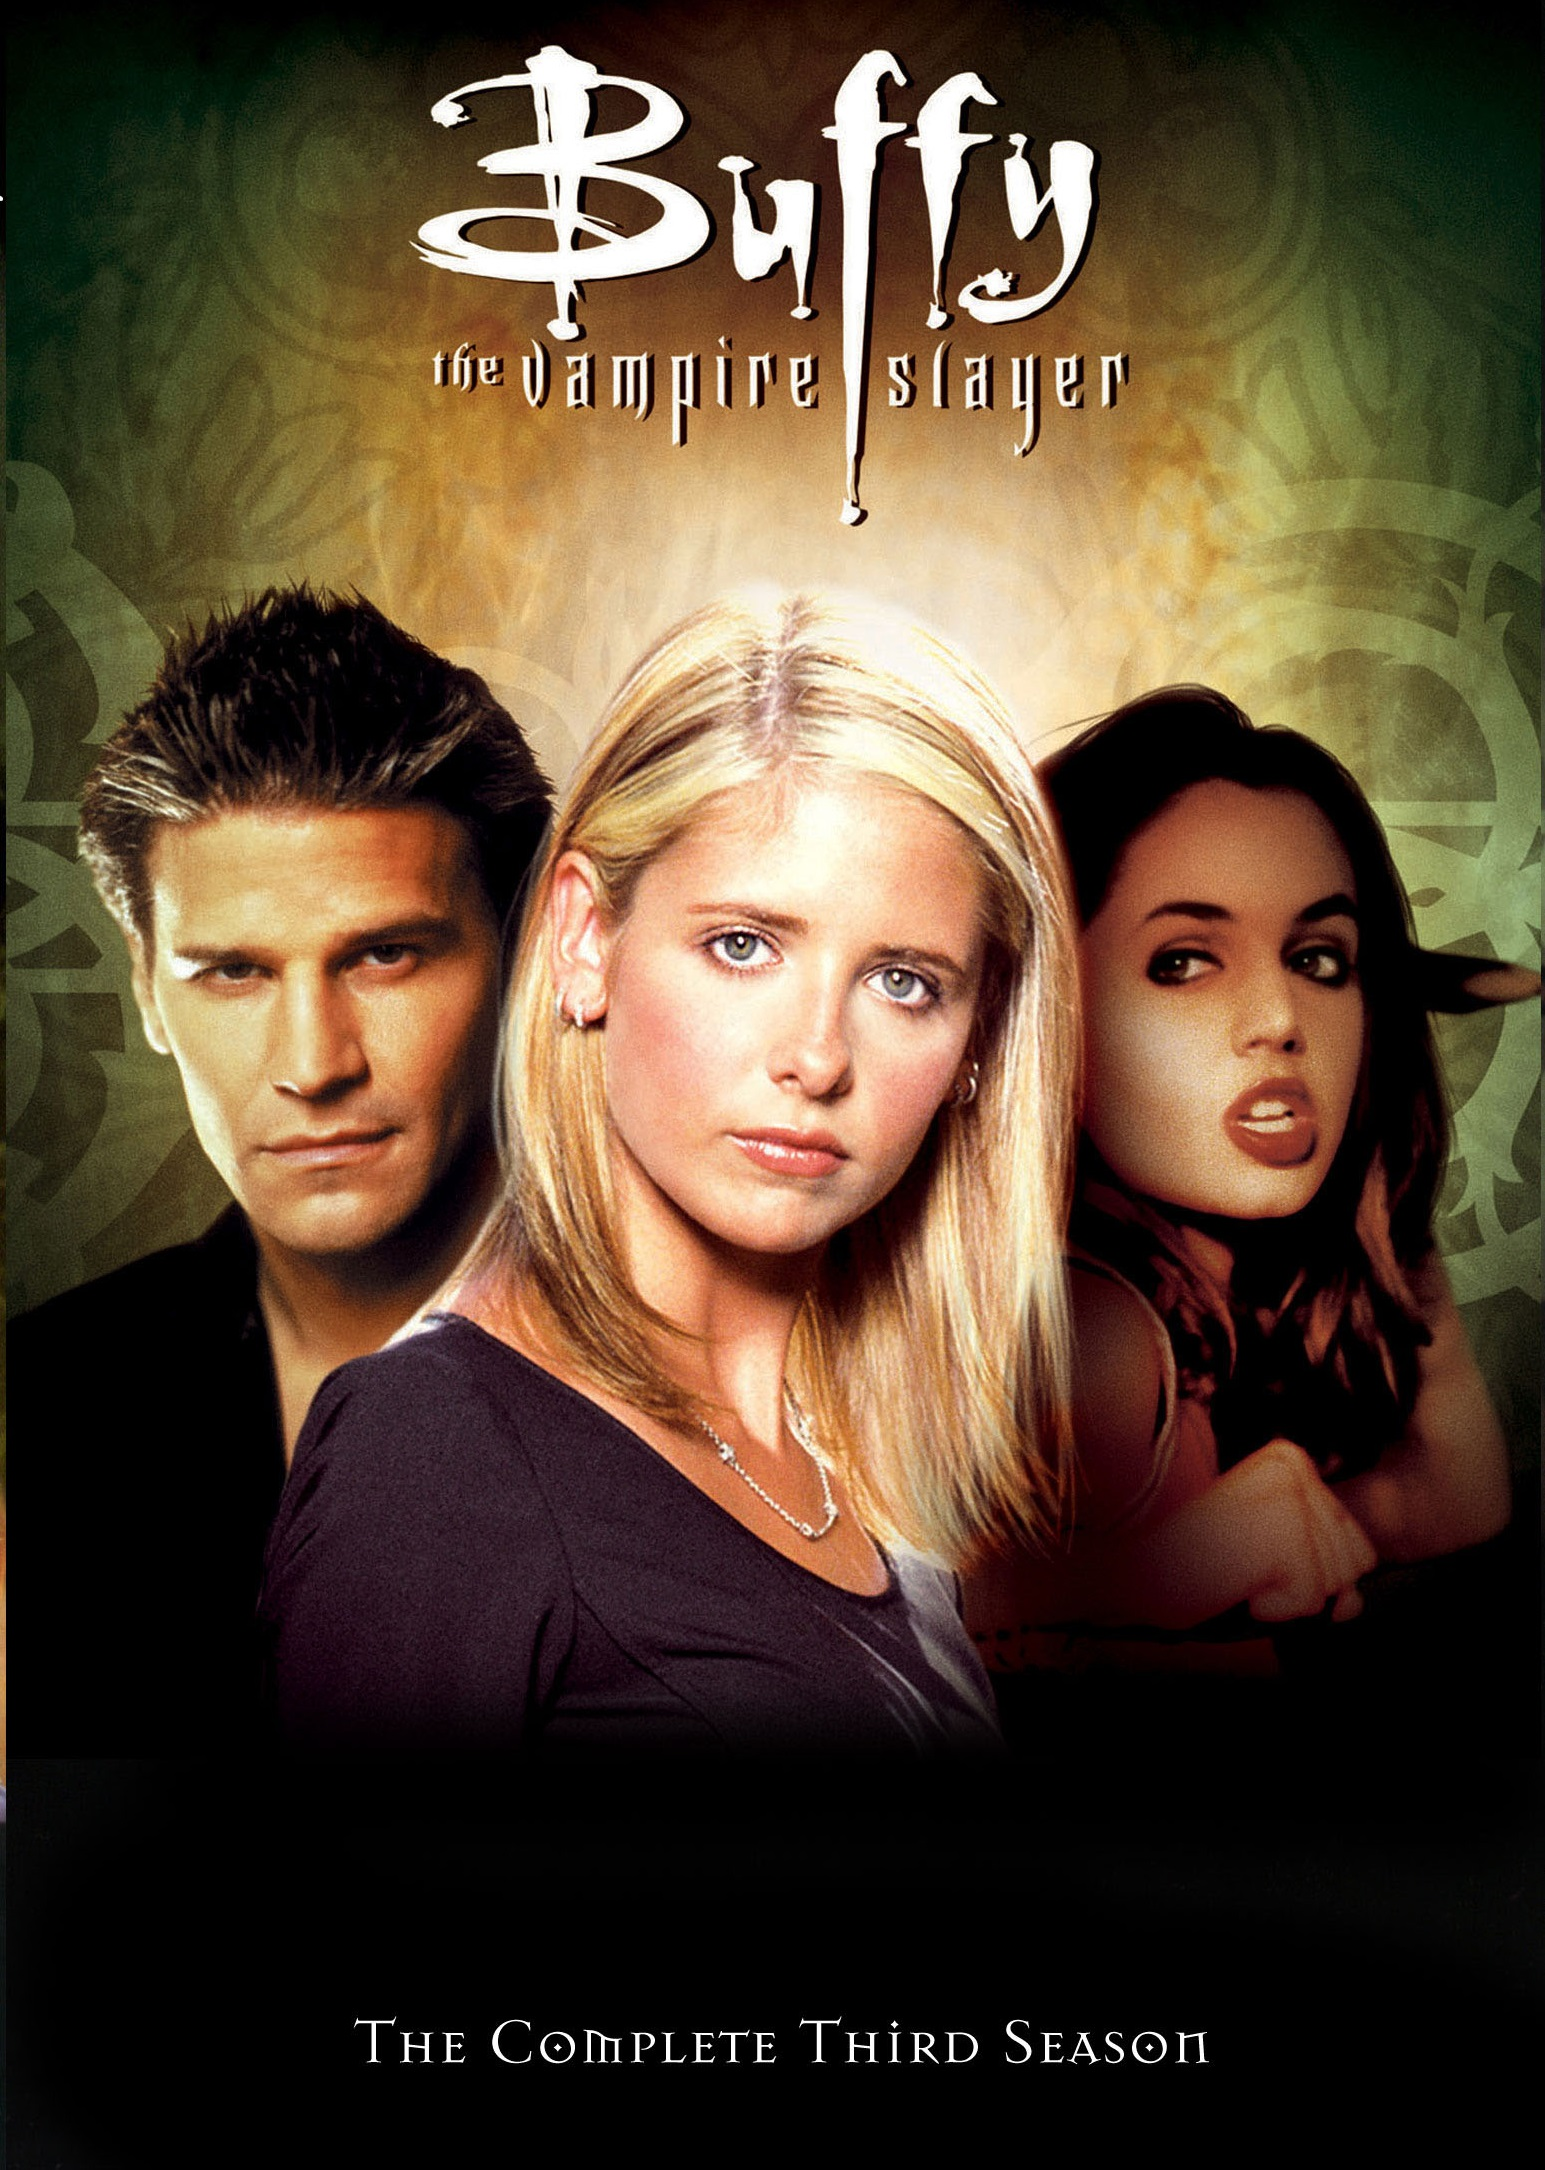 buffy the vampire slayer episode guide